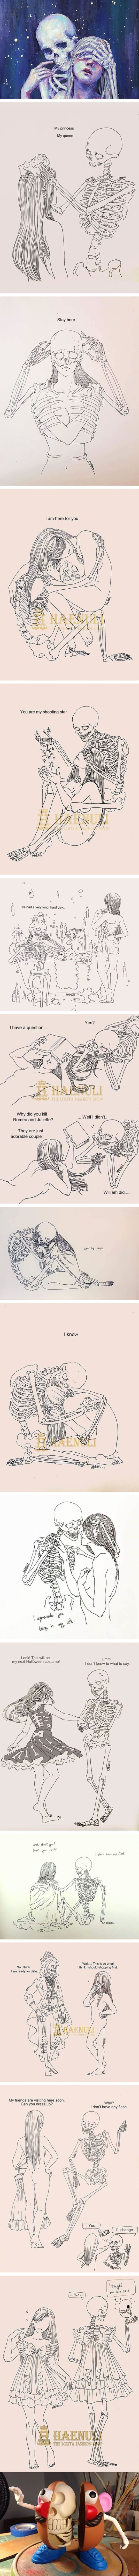 Open door drawing perspective - Death Inspired Love Comics That Artist Haenuli Created To Cope With Her Depression